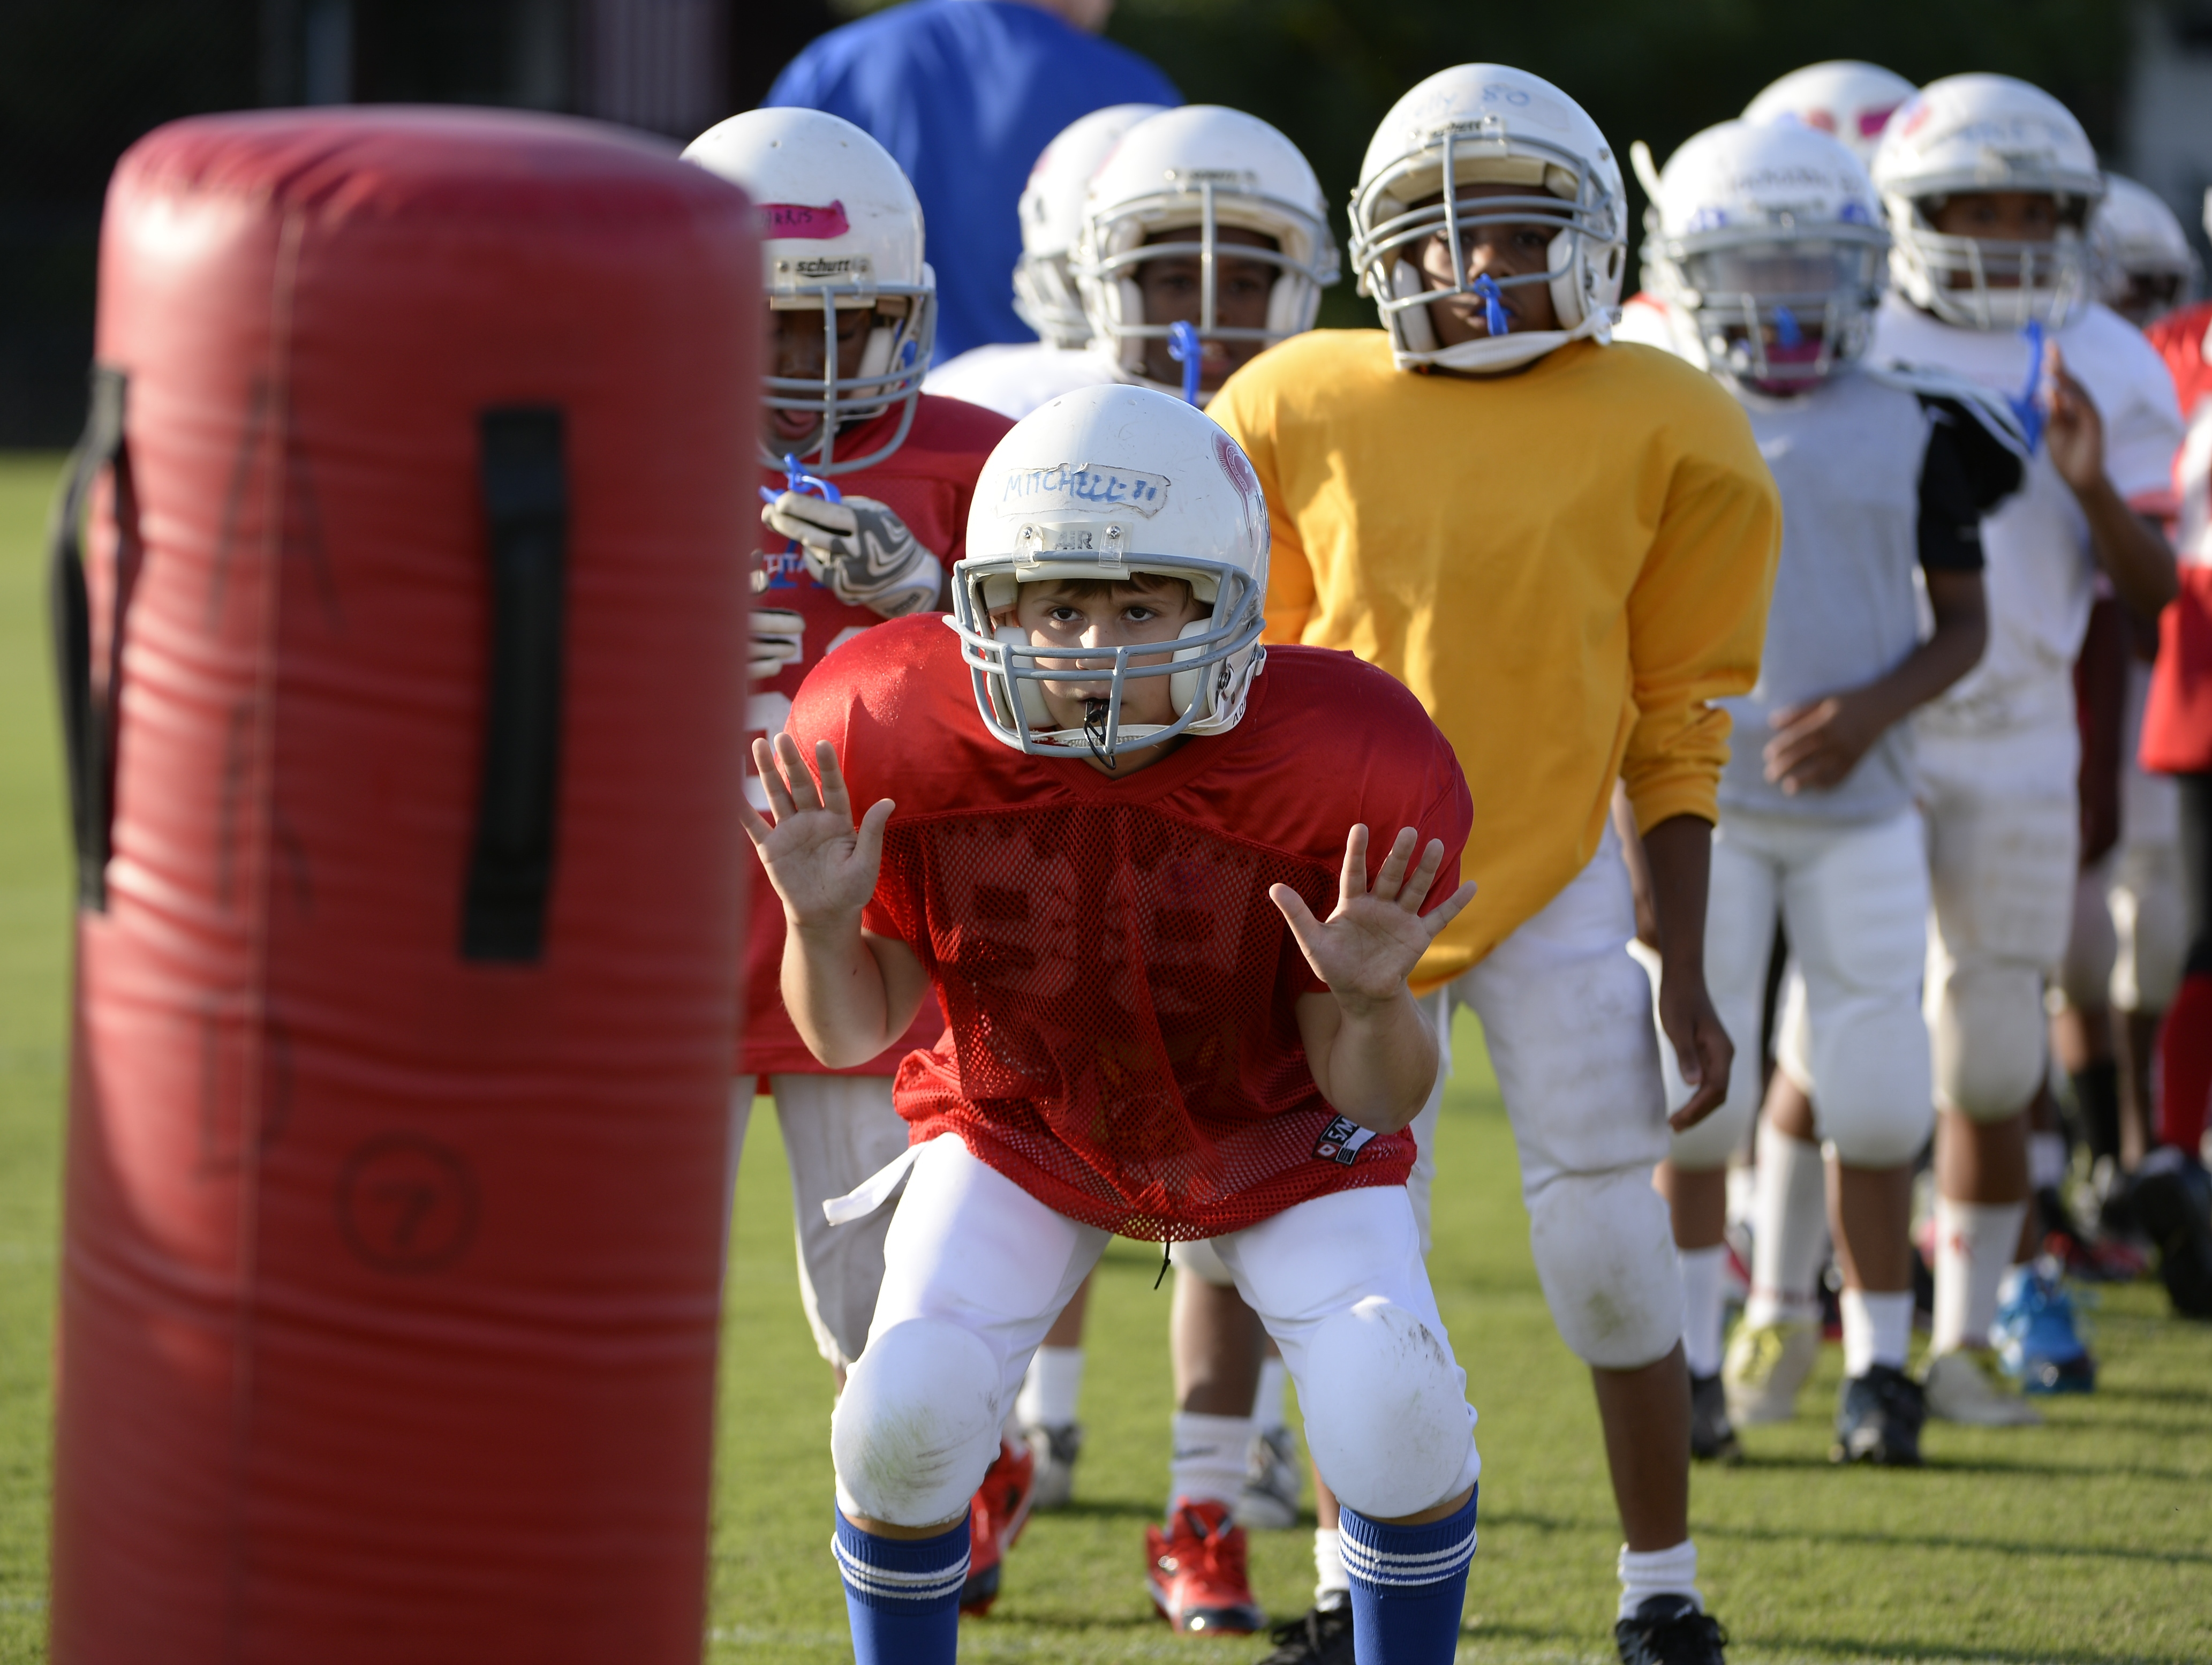 Mason Mitchell, 9, participates in a Heads Up Football drill during Fairfax County Youth Football practice in Virginia (Photo: H. Darr Beiser, USA TODAY)